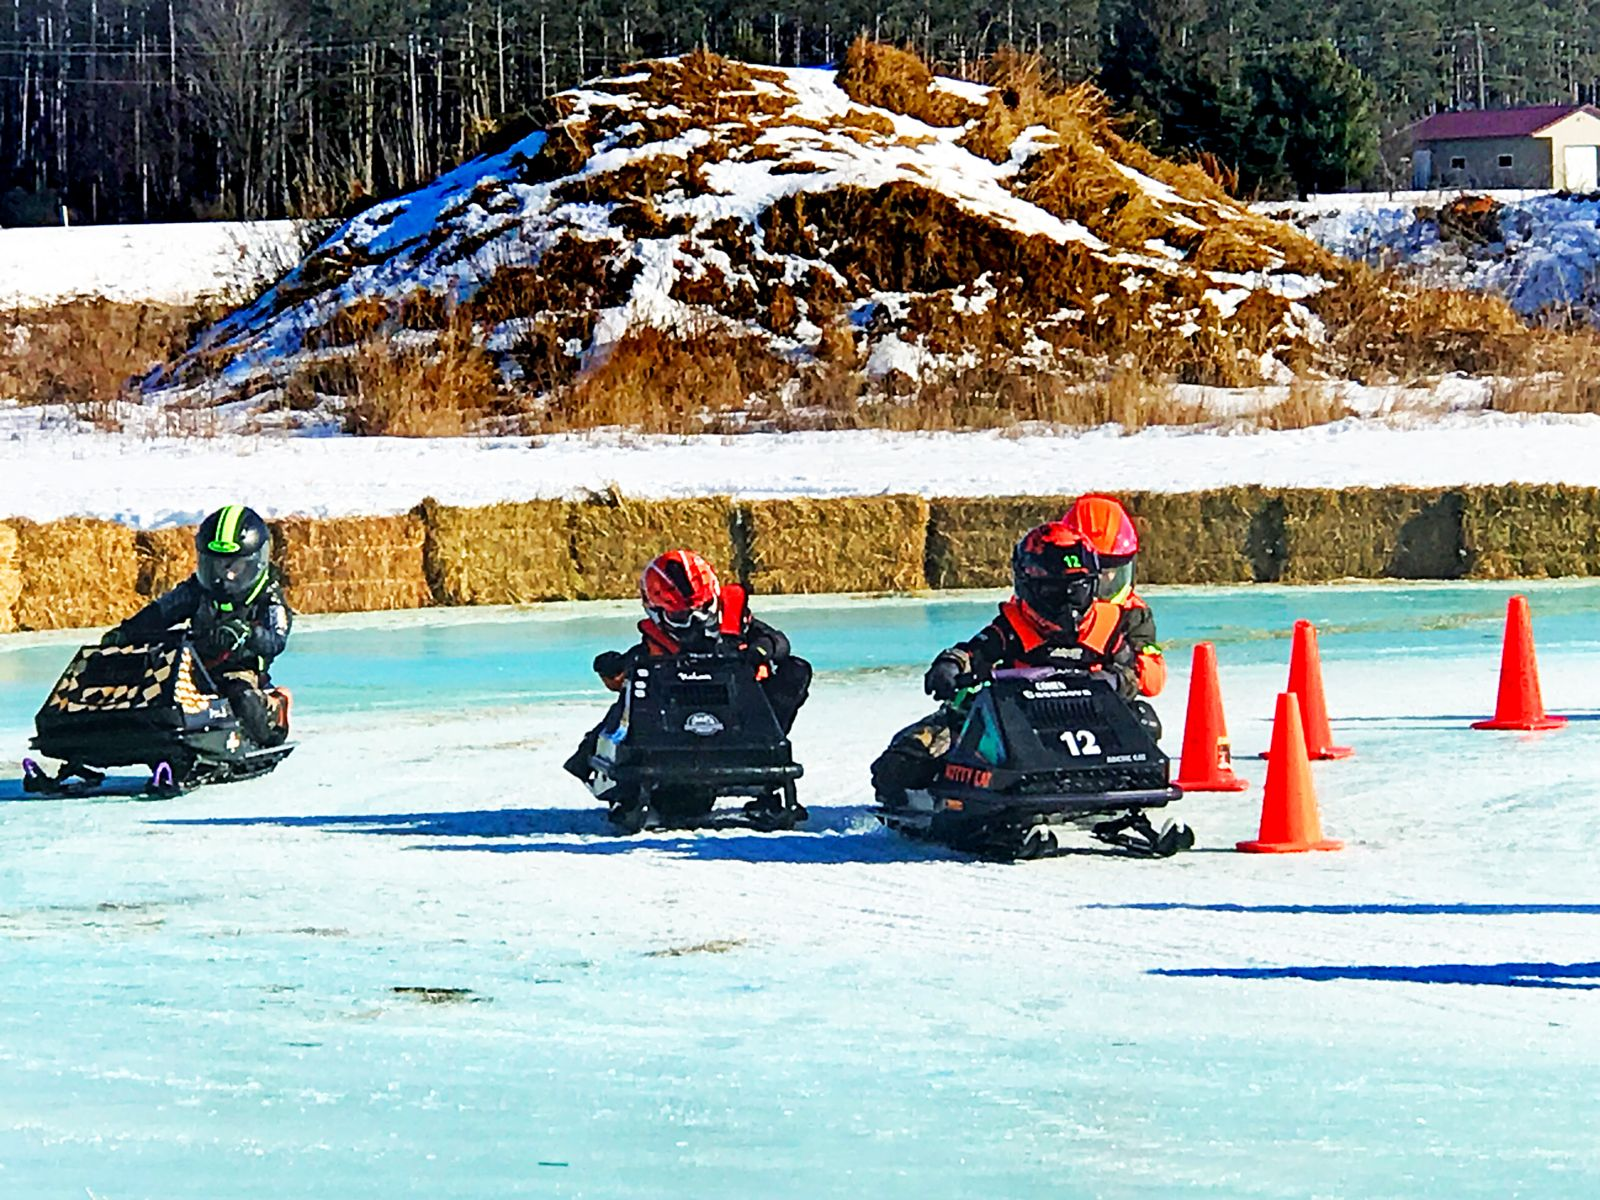 Wausau 525 Snowmobile Races